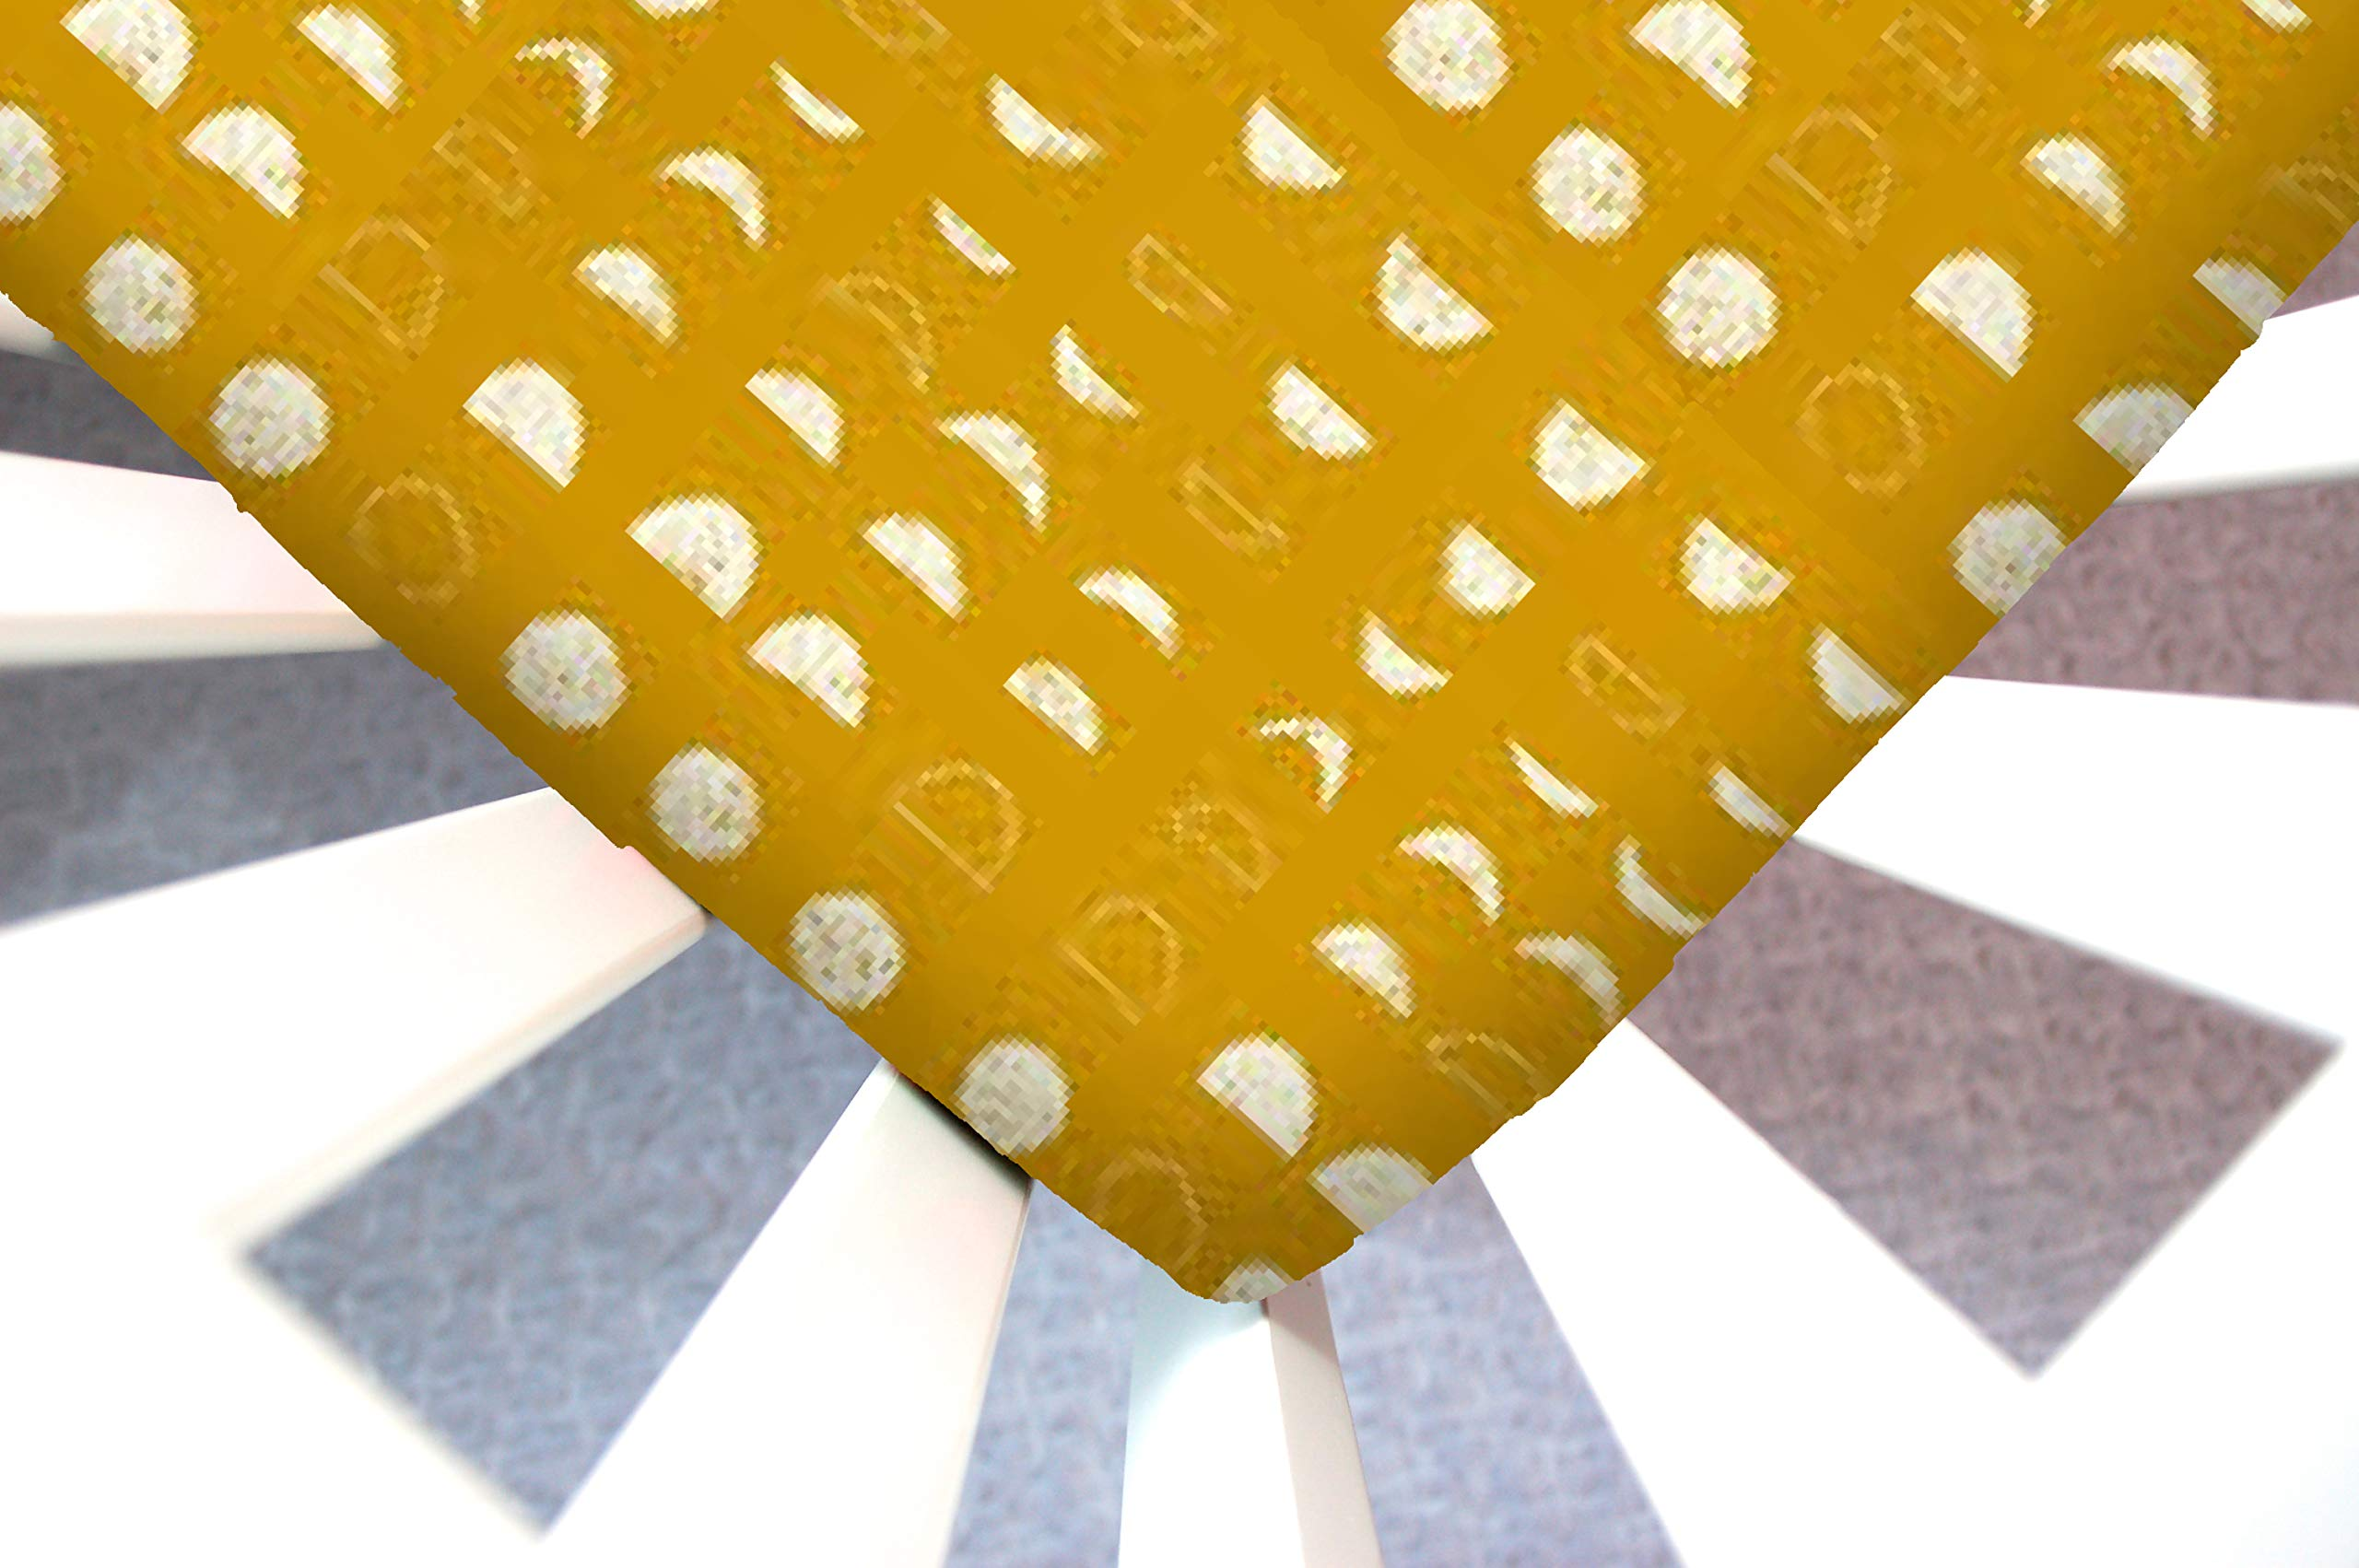 Little Moose by Liza Handmade Sheet Made to Fit an Uppababy Vista Bassinet 2018 in Lunation Bright (Gold Moon Phases). This Sheet was Not Created or Sold by Uppababy. by Little Moose By Liza LLC